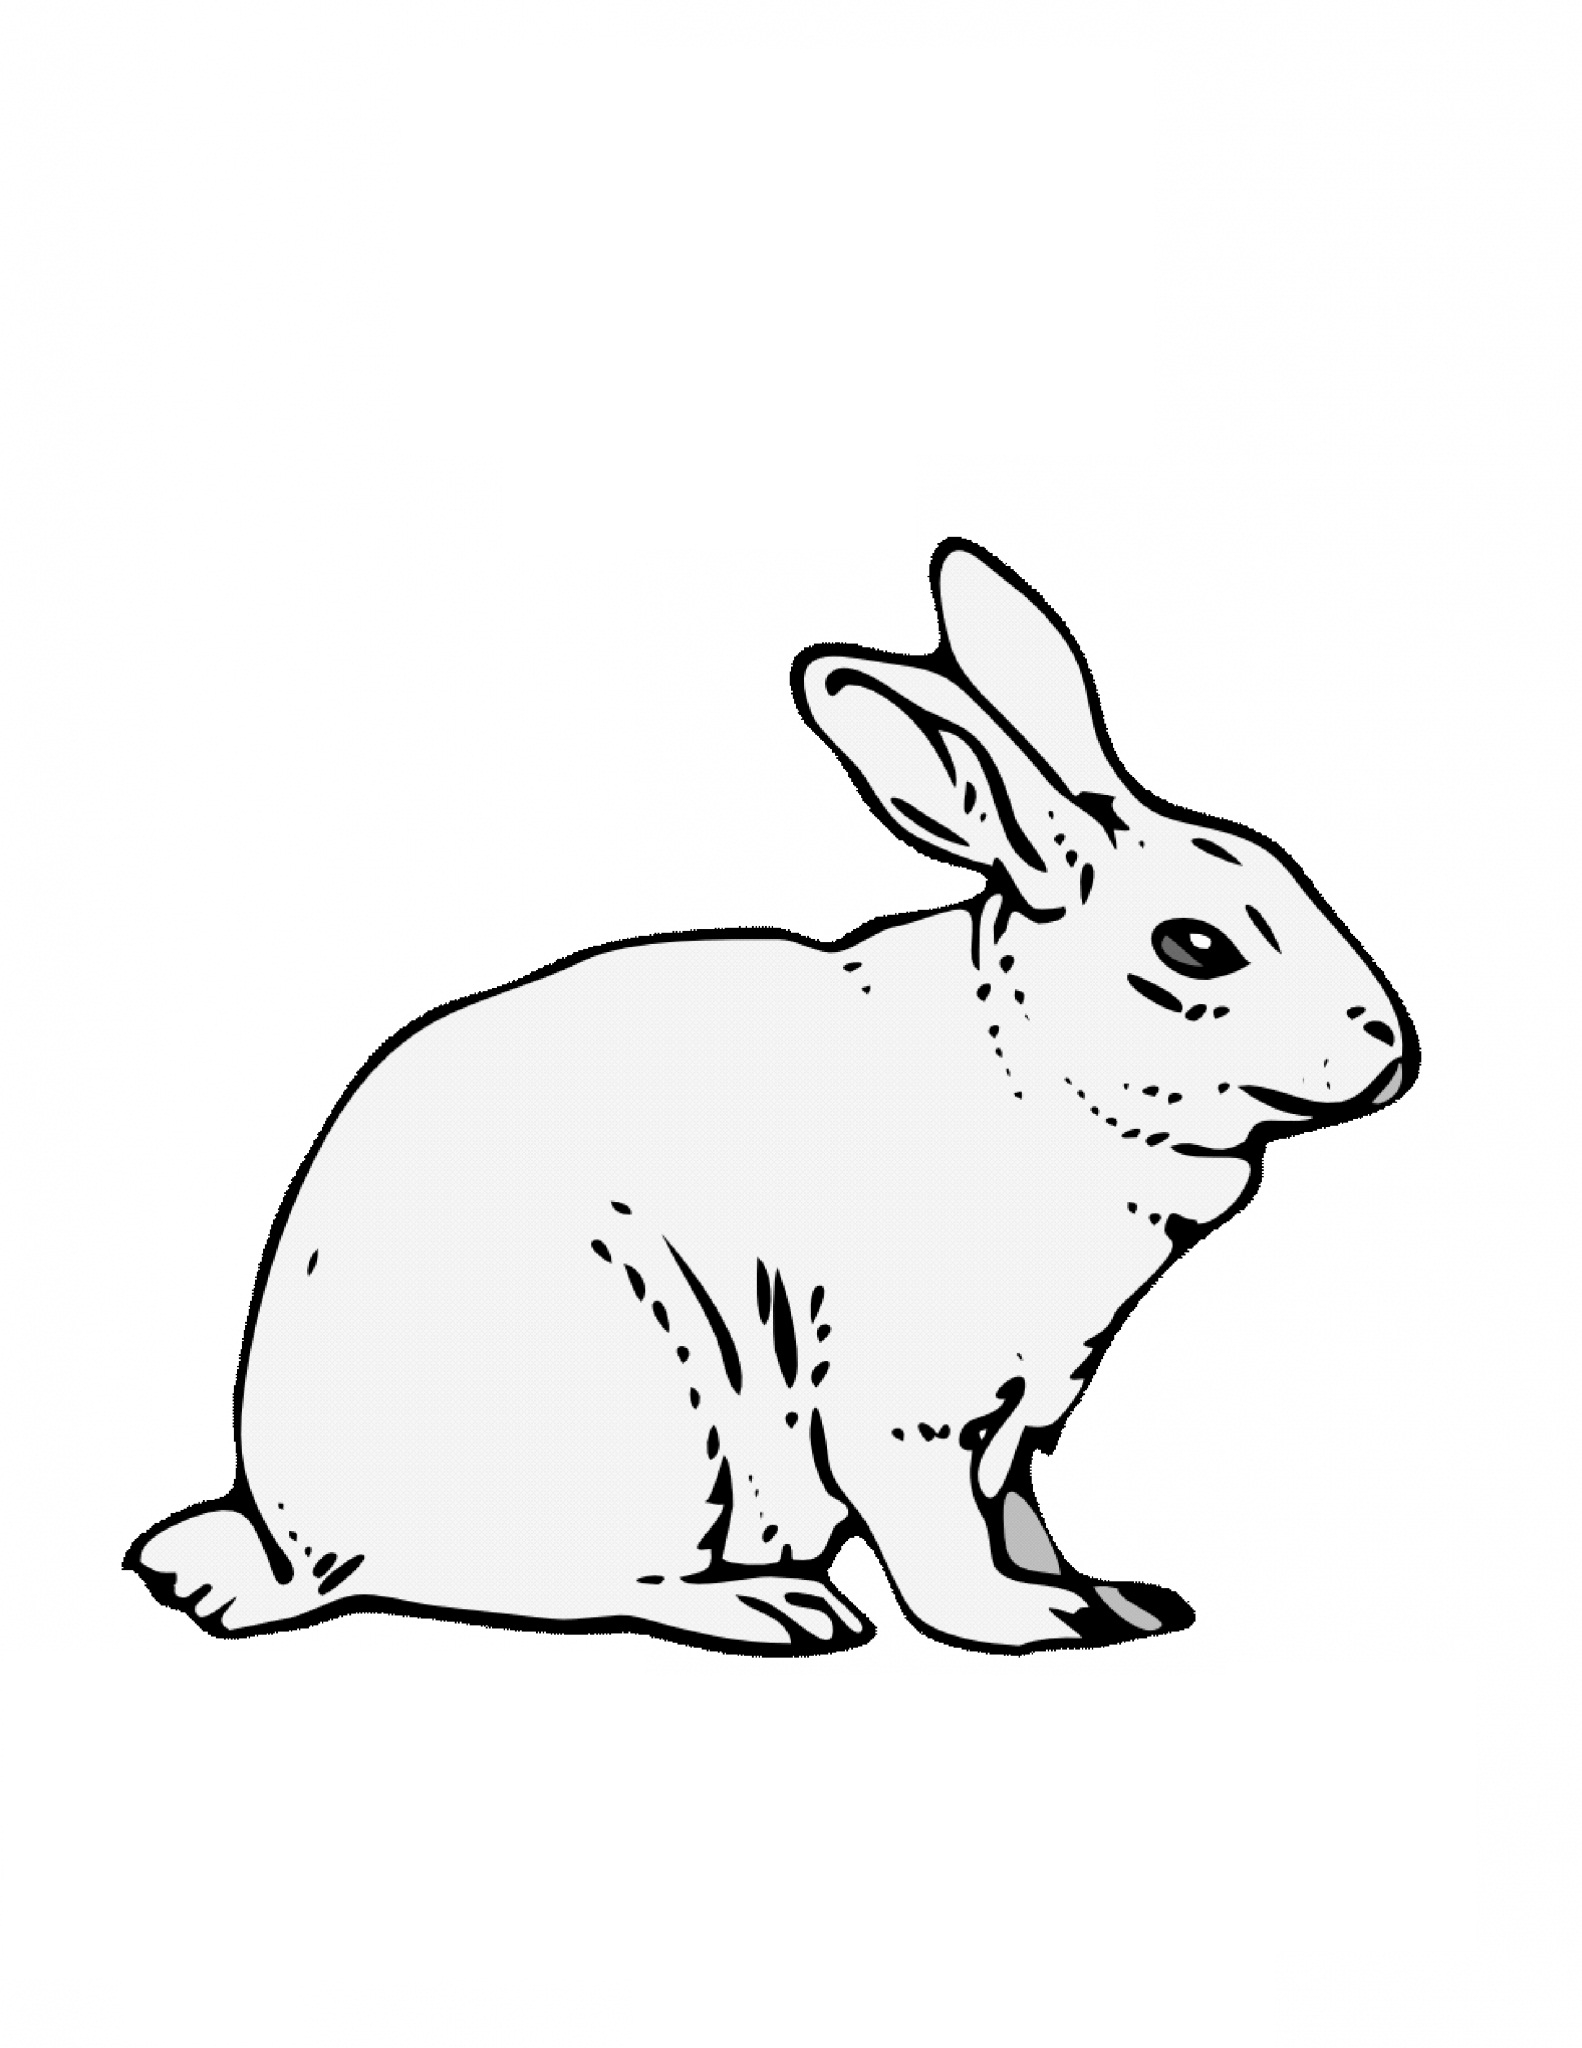 rabbit color pages free printable rabbit coloring pages for kids color pages rabbit